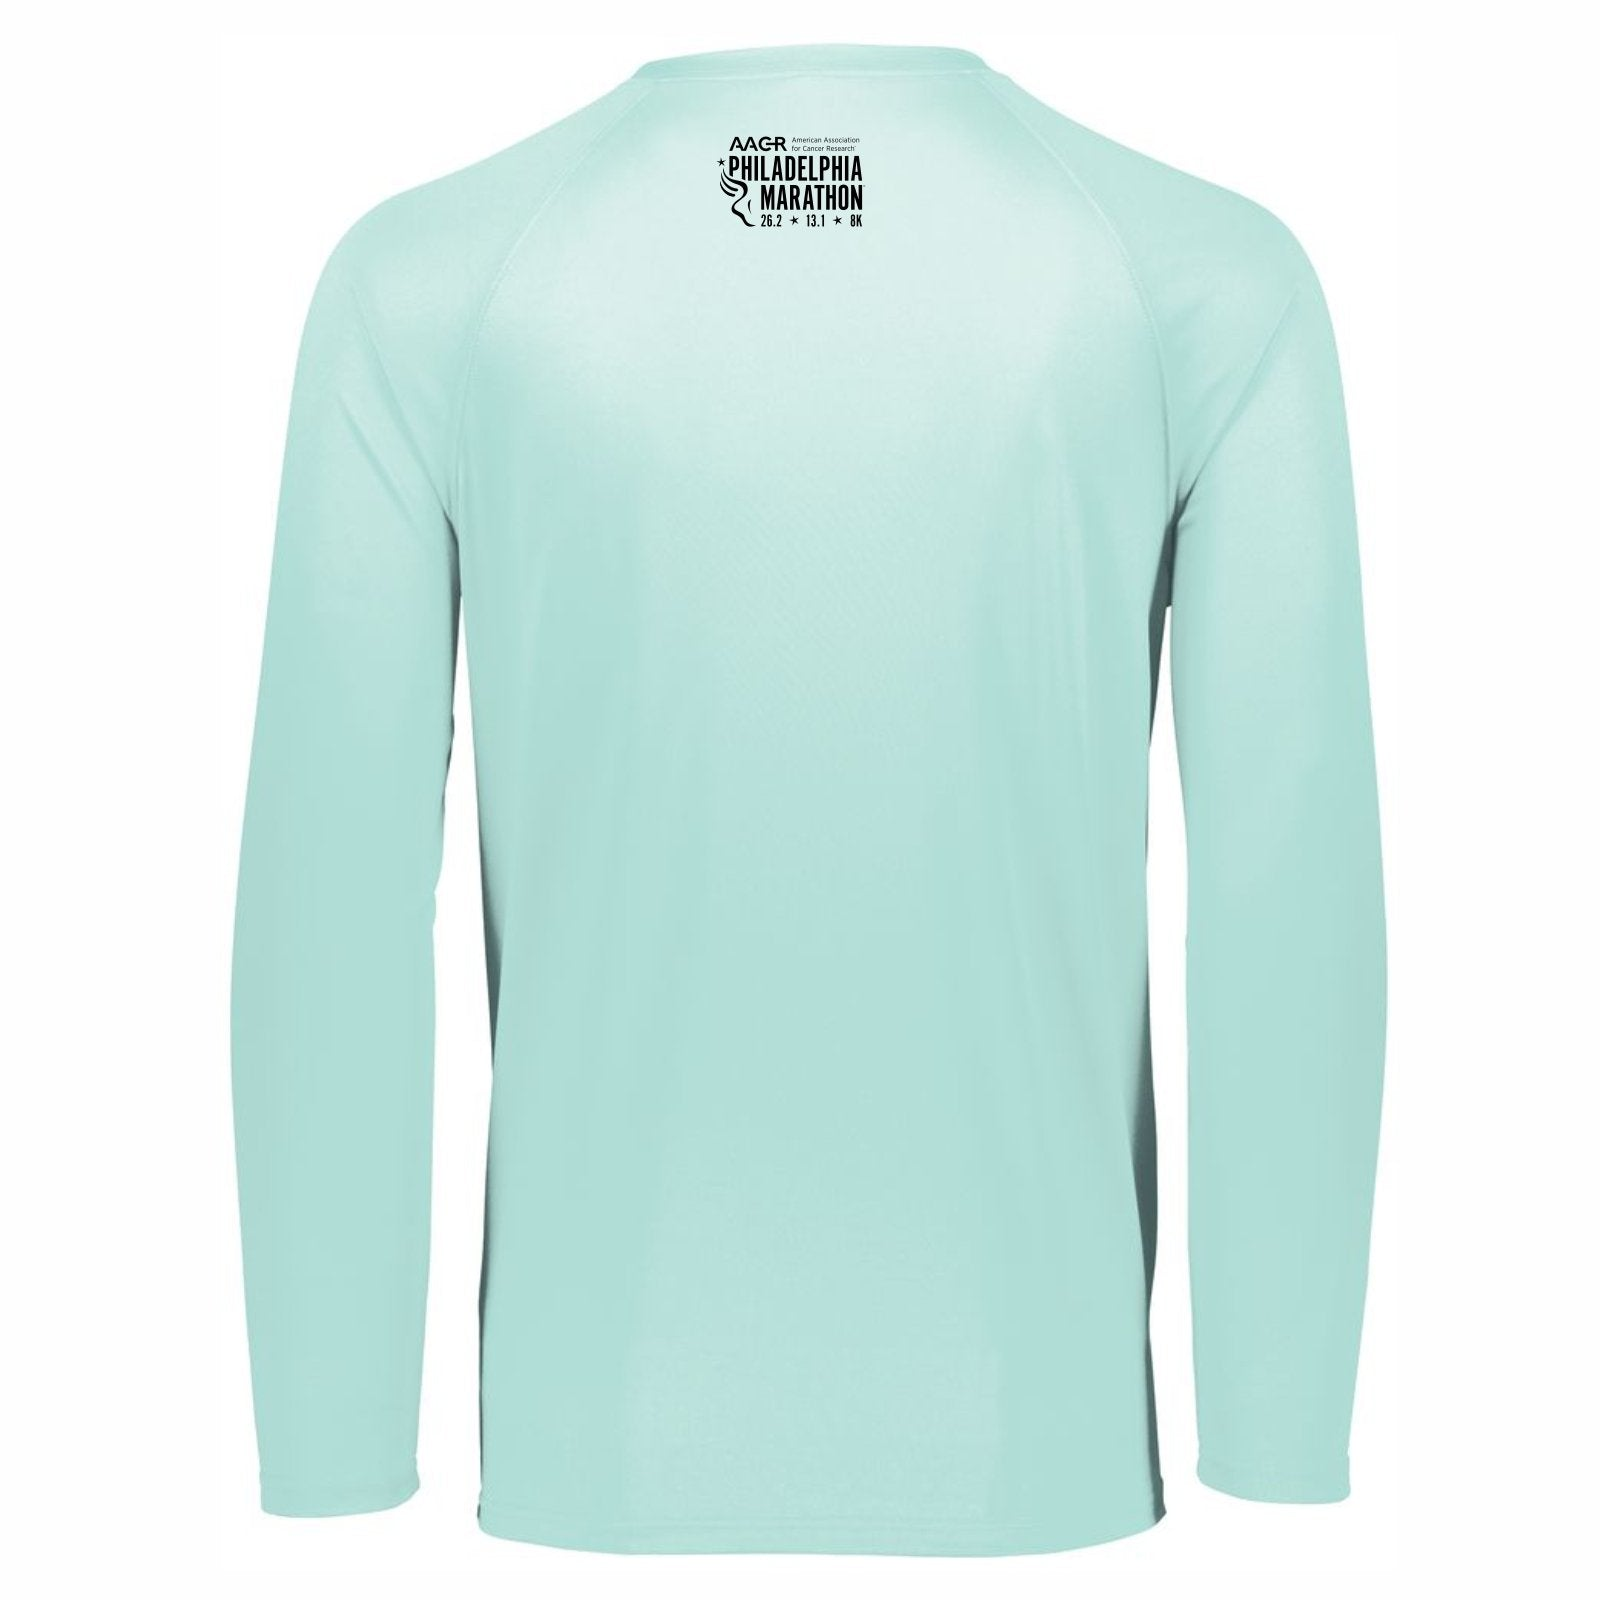 Women's LS Tech V-Neck Tee -Sea Foam 'Classic Design' - AACR Philadelphia Marathon